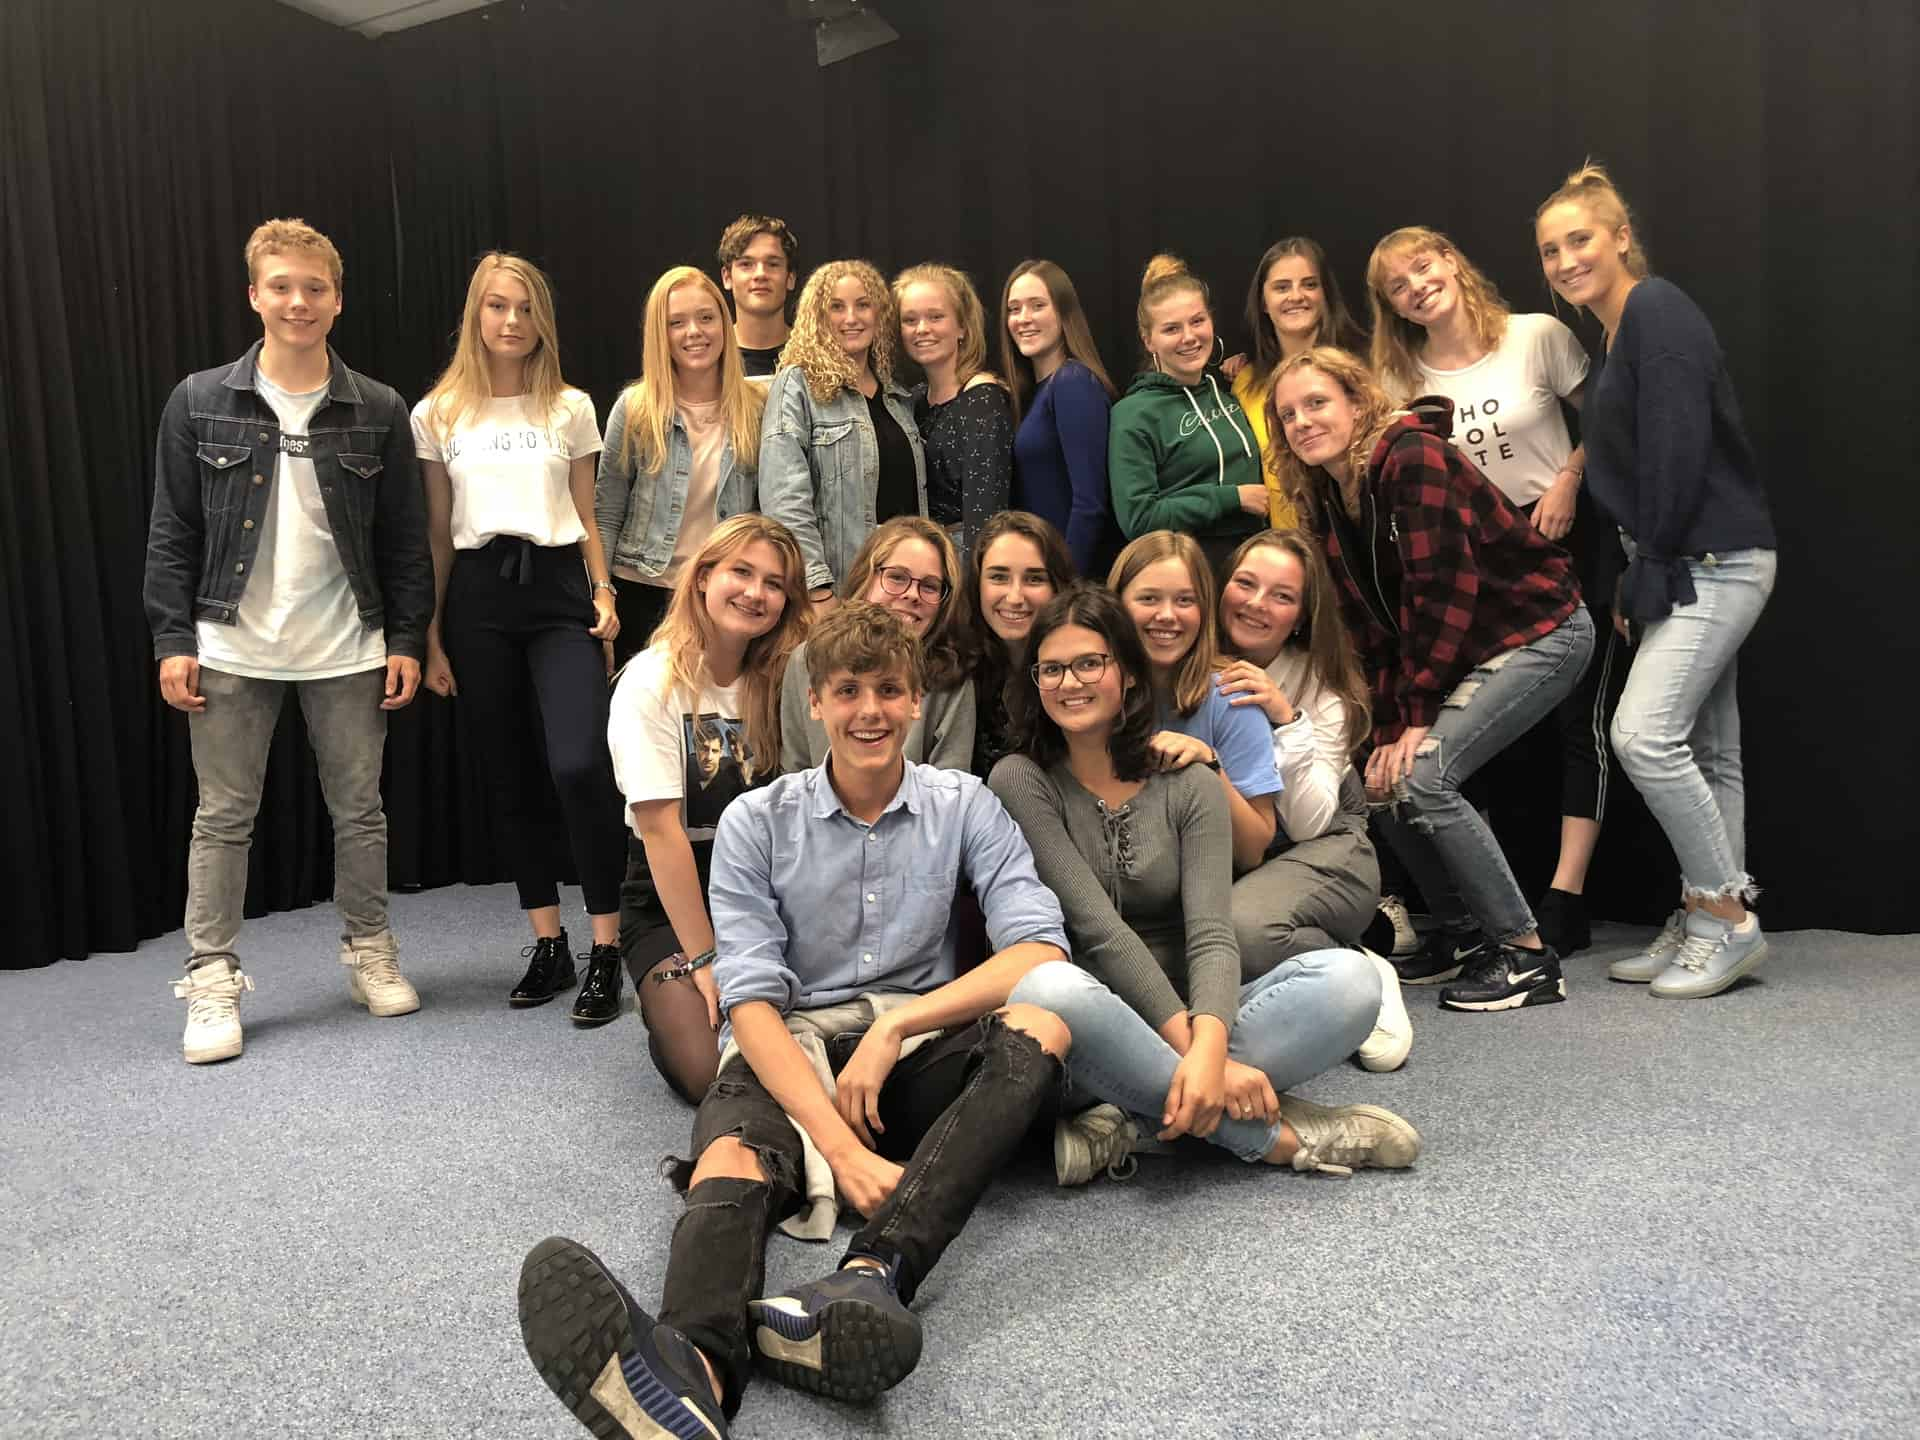 JPTheaterklas presenteert: CASE CLOSED